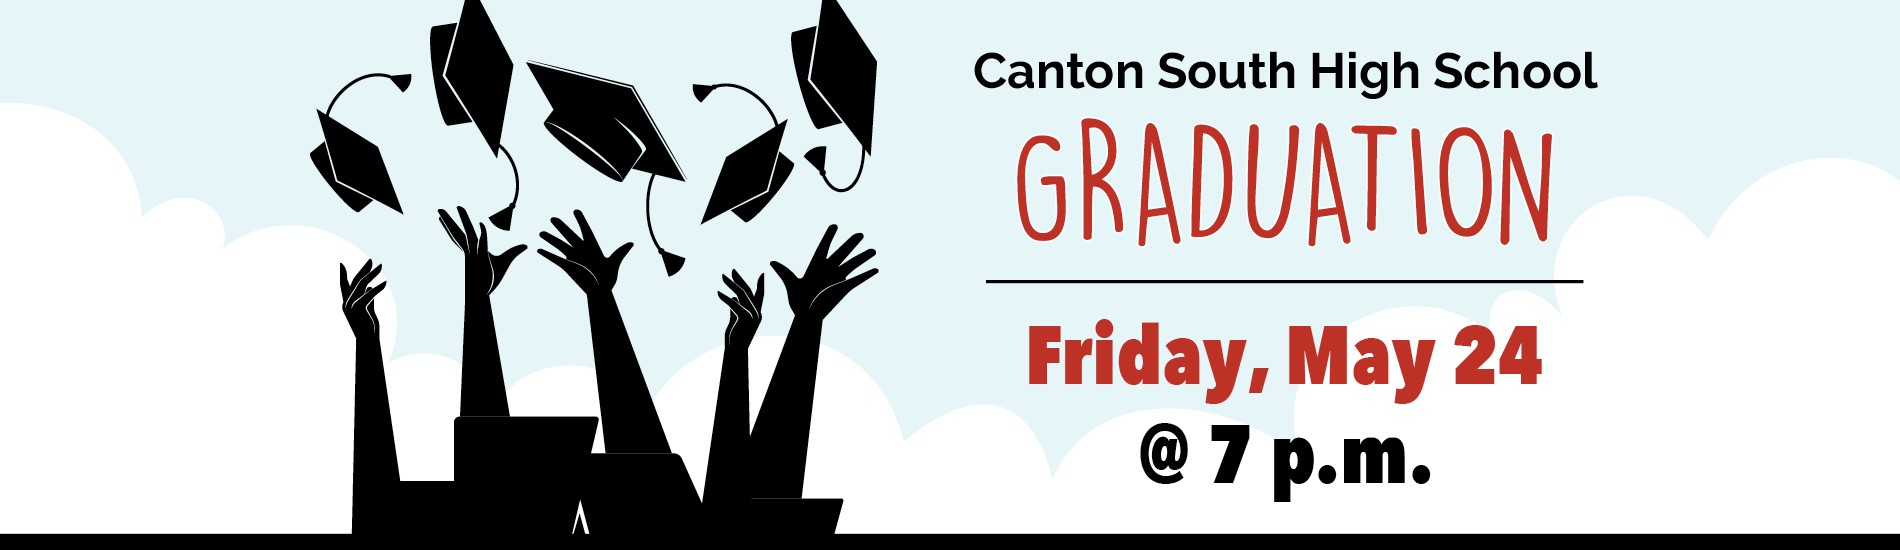 CSHS Graduation May 24 at 7:00 p.m